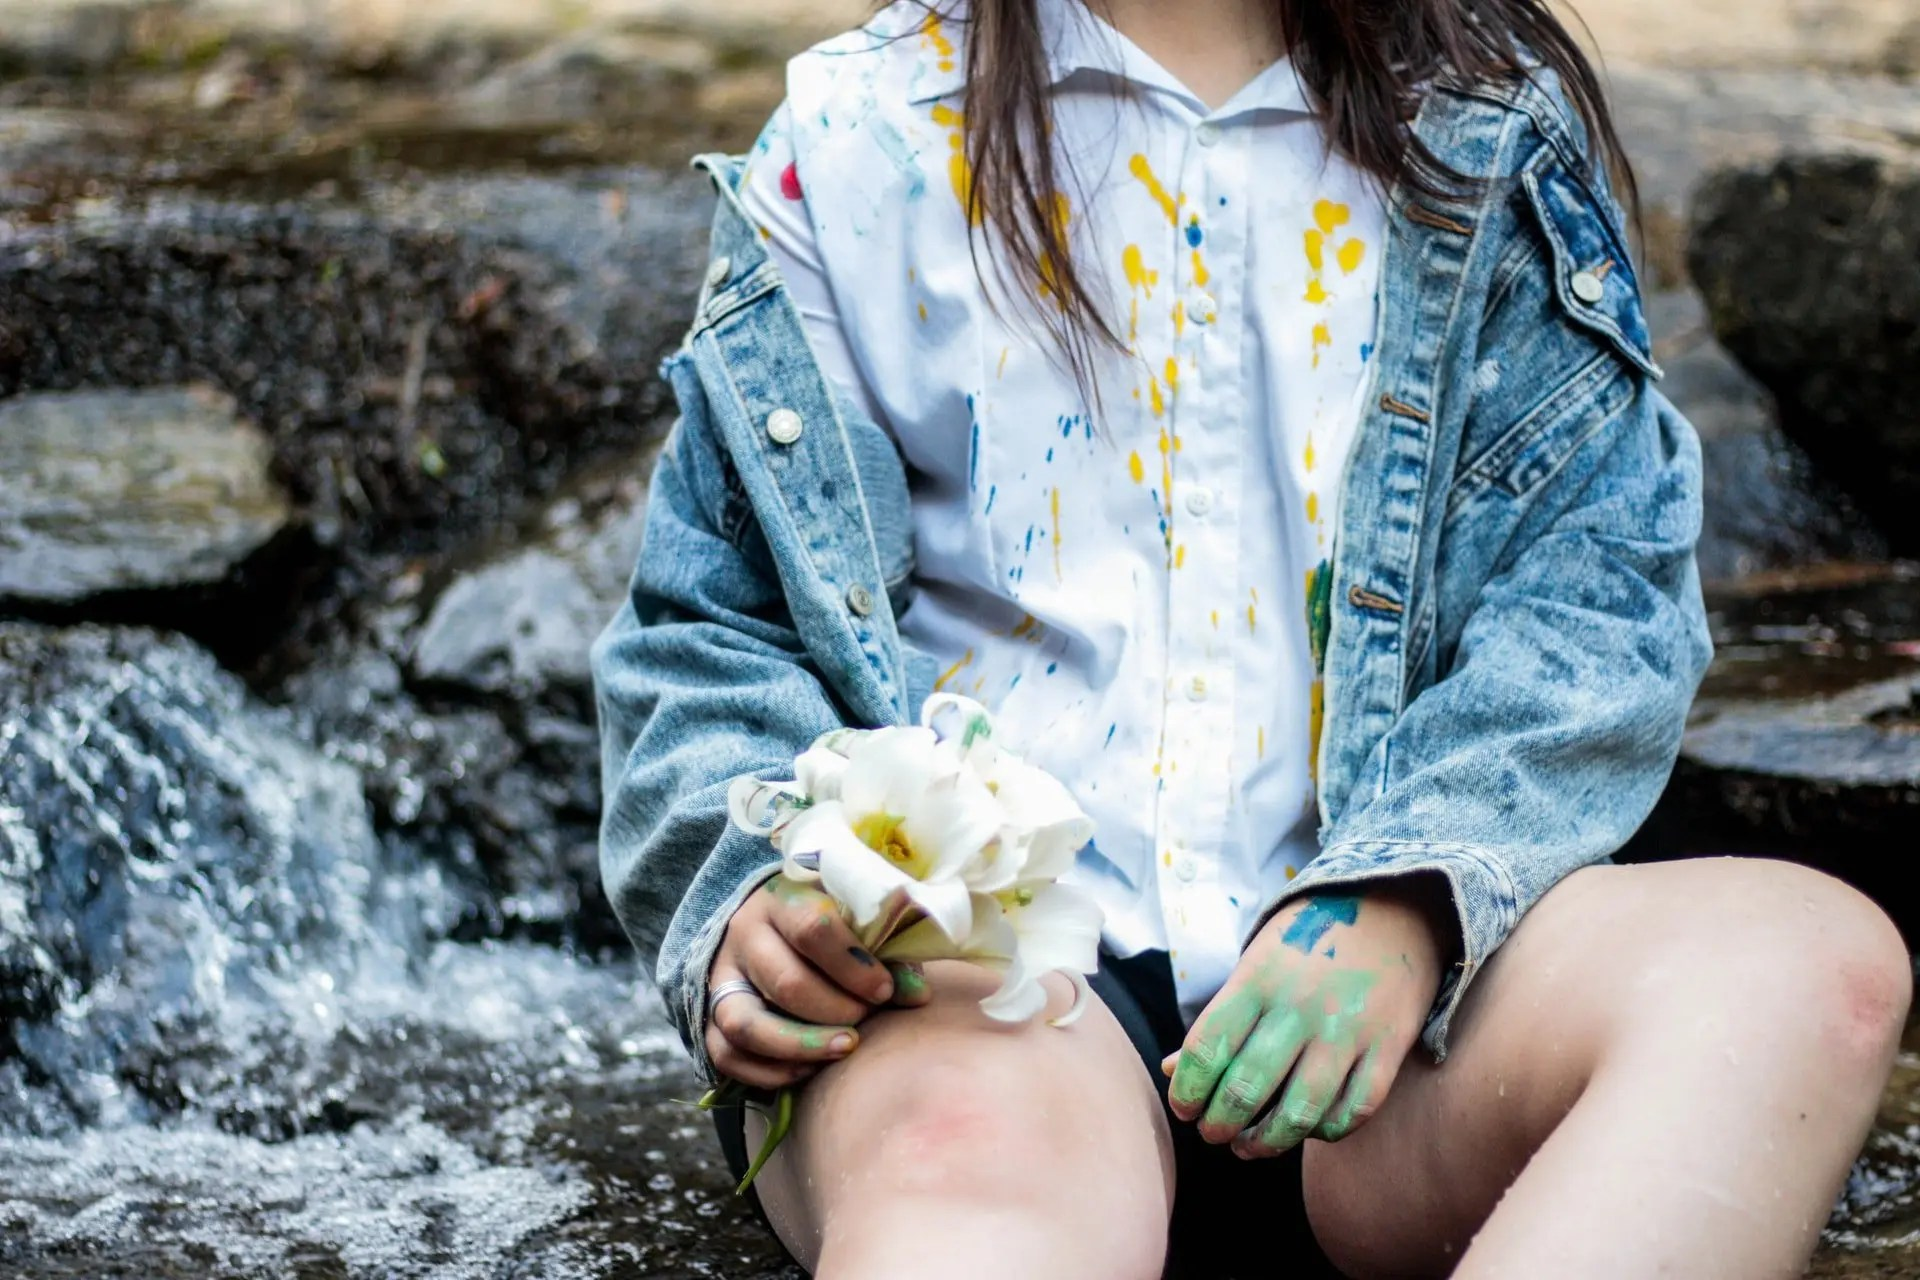 Girl covered in paint and holding flowers